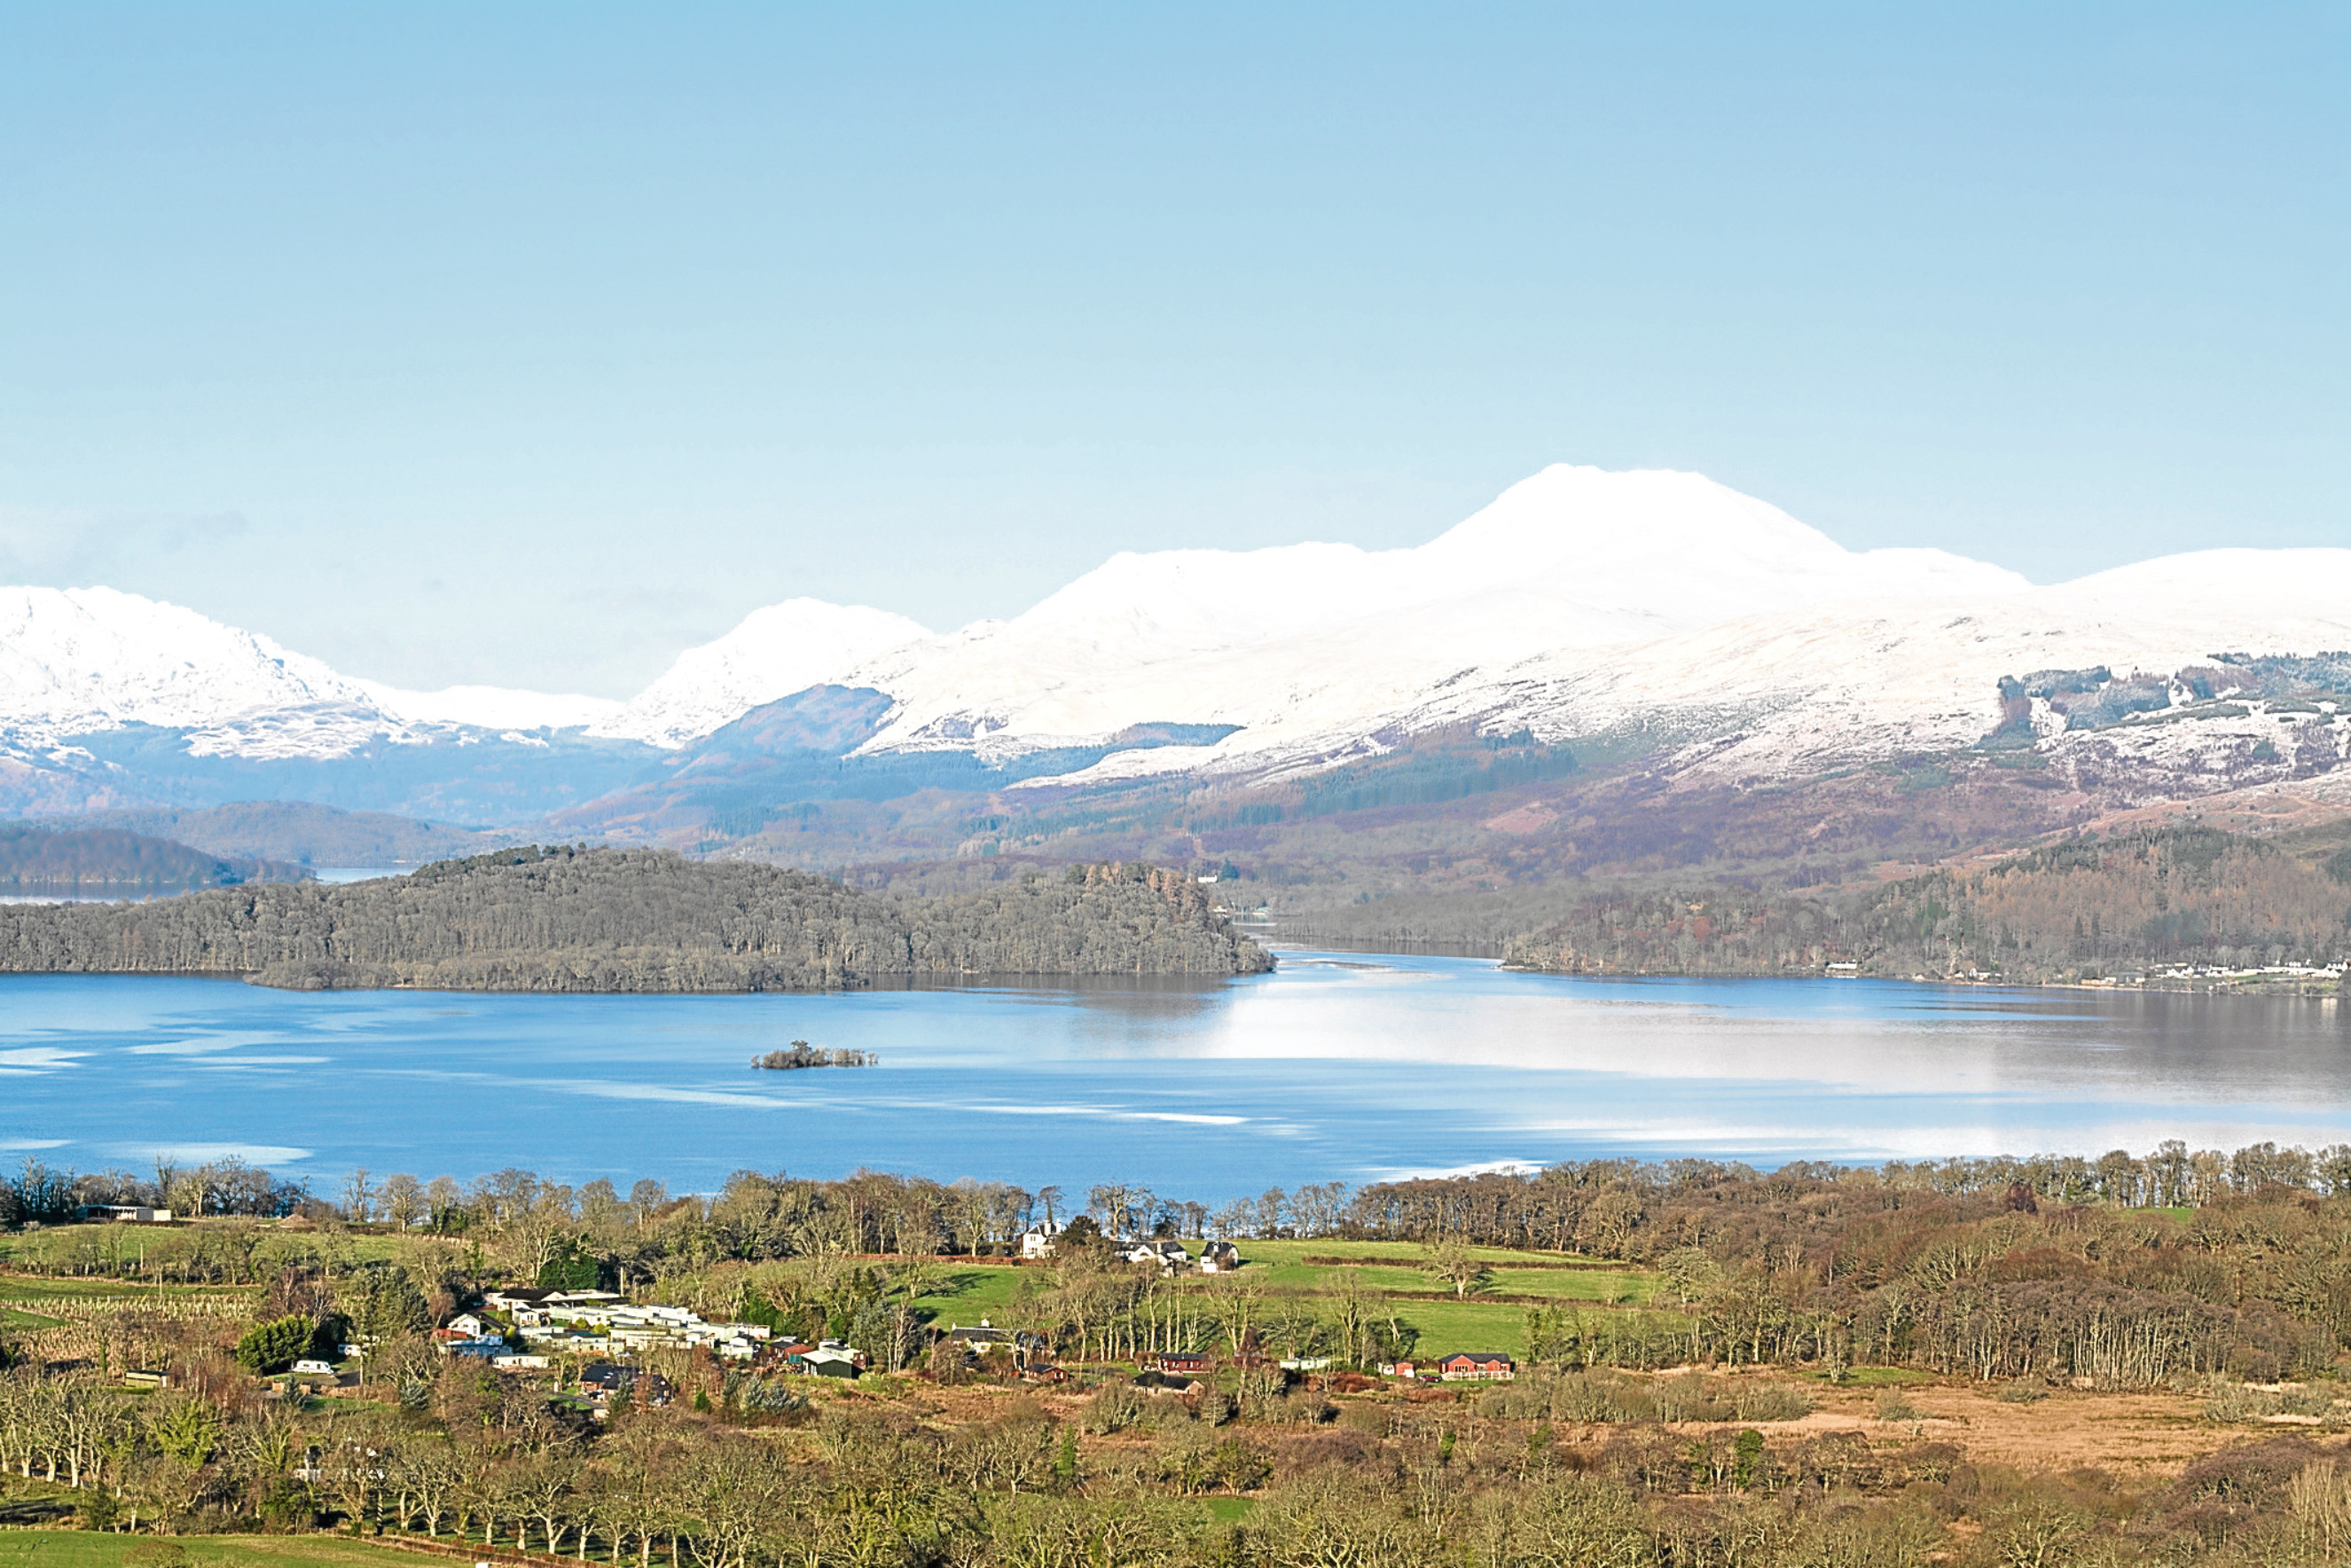 Snow covered Ben Lomond overlooking Loch Lomond, Scotland.